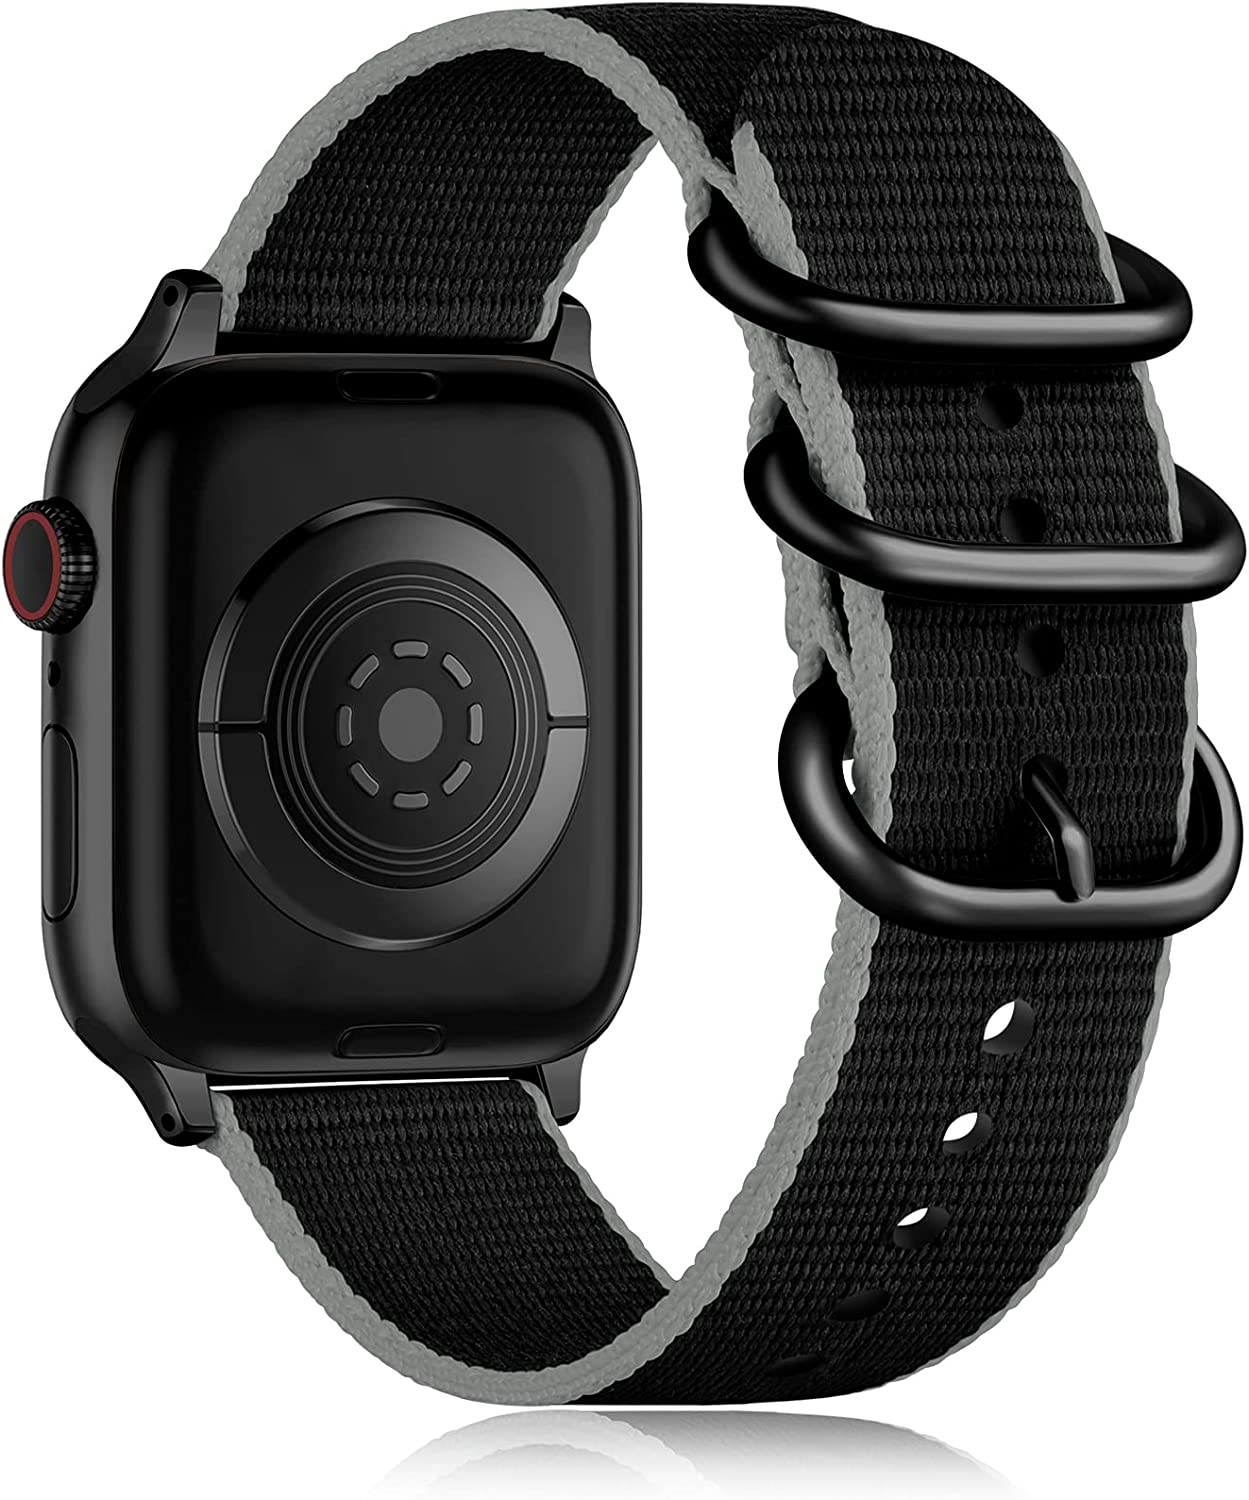 Getino Compatible with Apple Watch Band 40mm 38mm, Stylish Sport Military-Style Stripe Nylon iWatch Replacement Band with Metal Buckle fit with iWatch SE Series 6 5 4 3 2 1, Black/ Gray